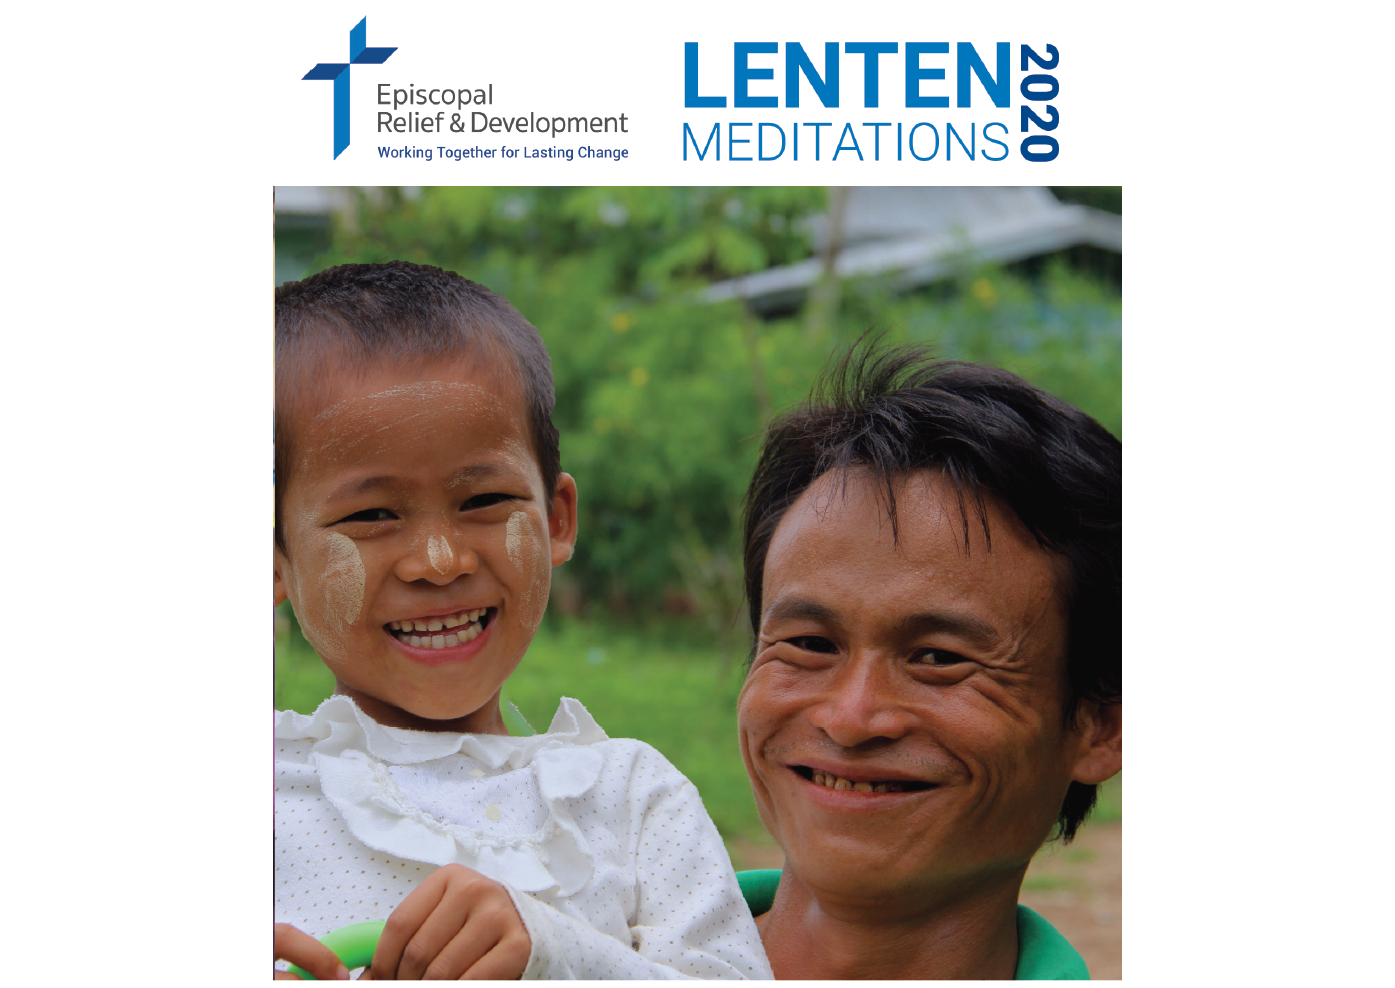 Episcopal Relief & Development Lenten Meditations and One Thousand Days of Love